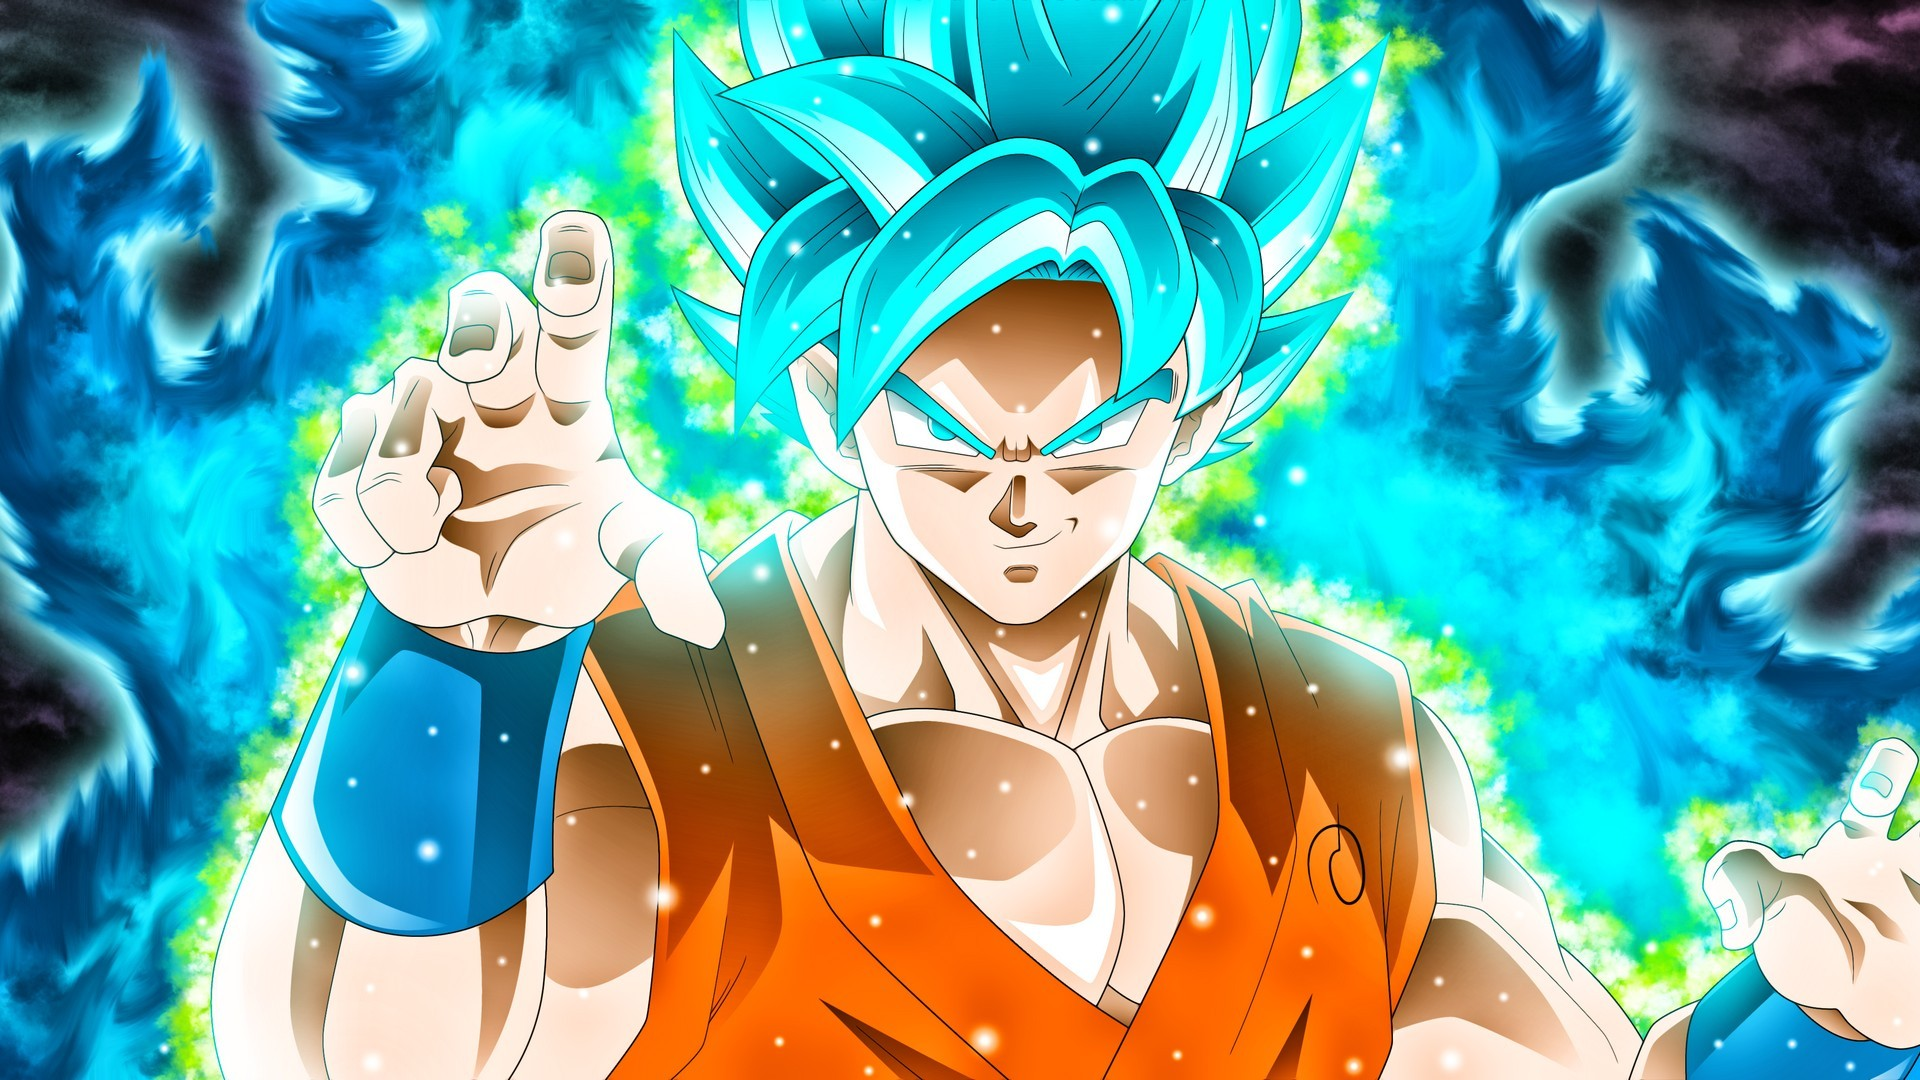 Goku Ssj Blue Wallpaper For Desktop With Image Resolution Live Wallpaper Goku Super Saiyan 1920x1080 Download Hd Wallpaper Wallpapertip